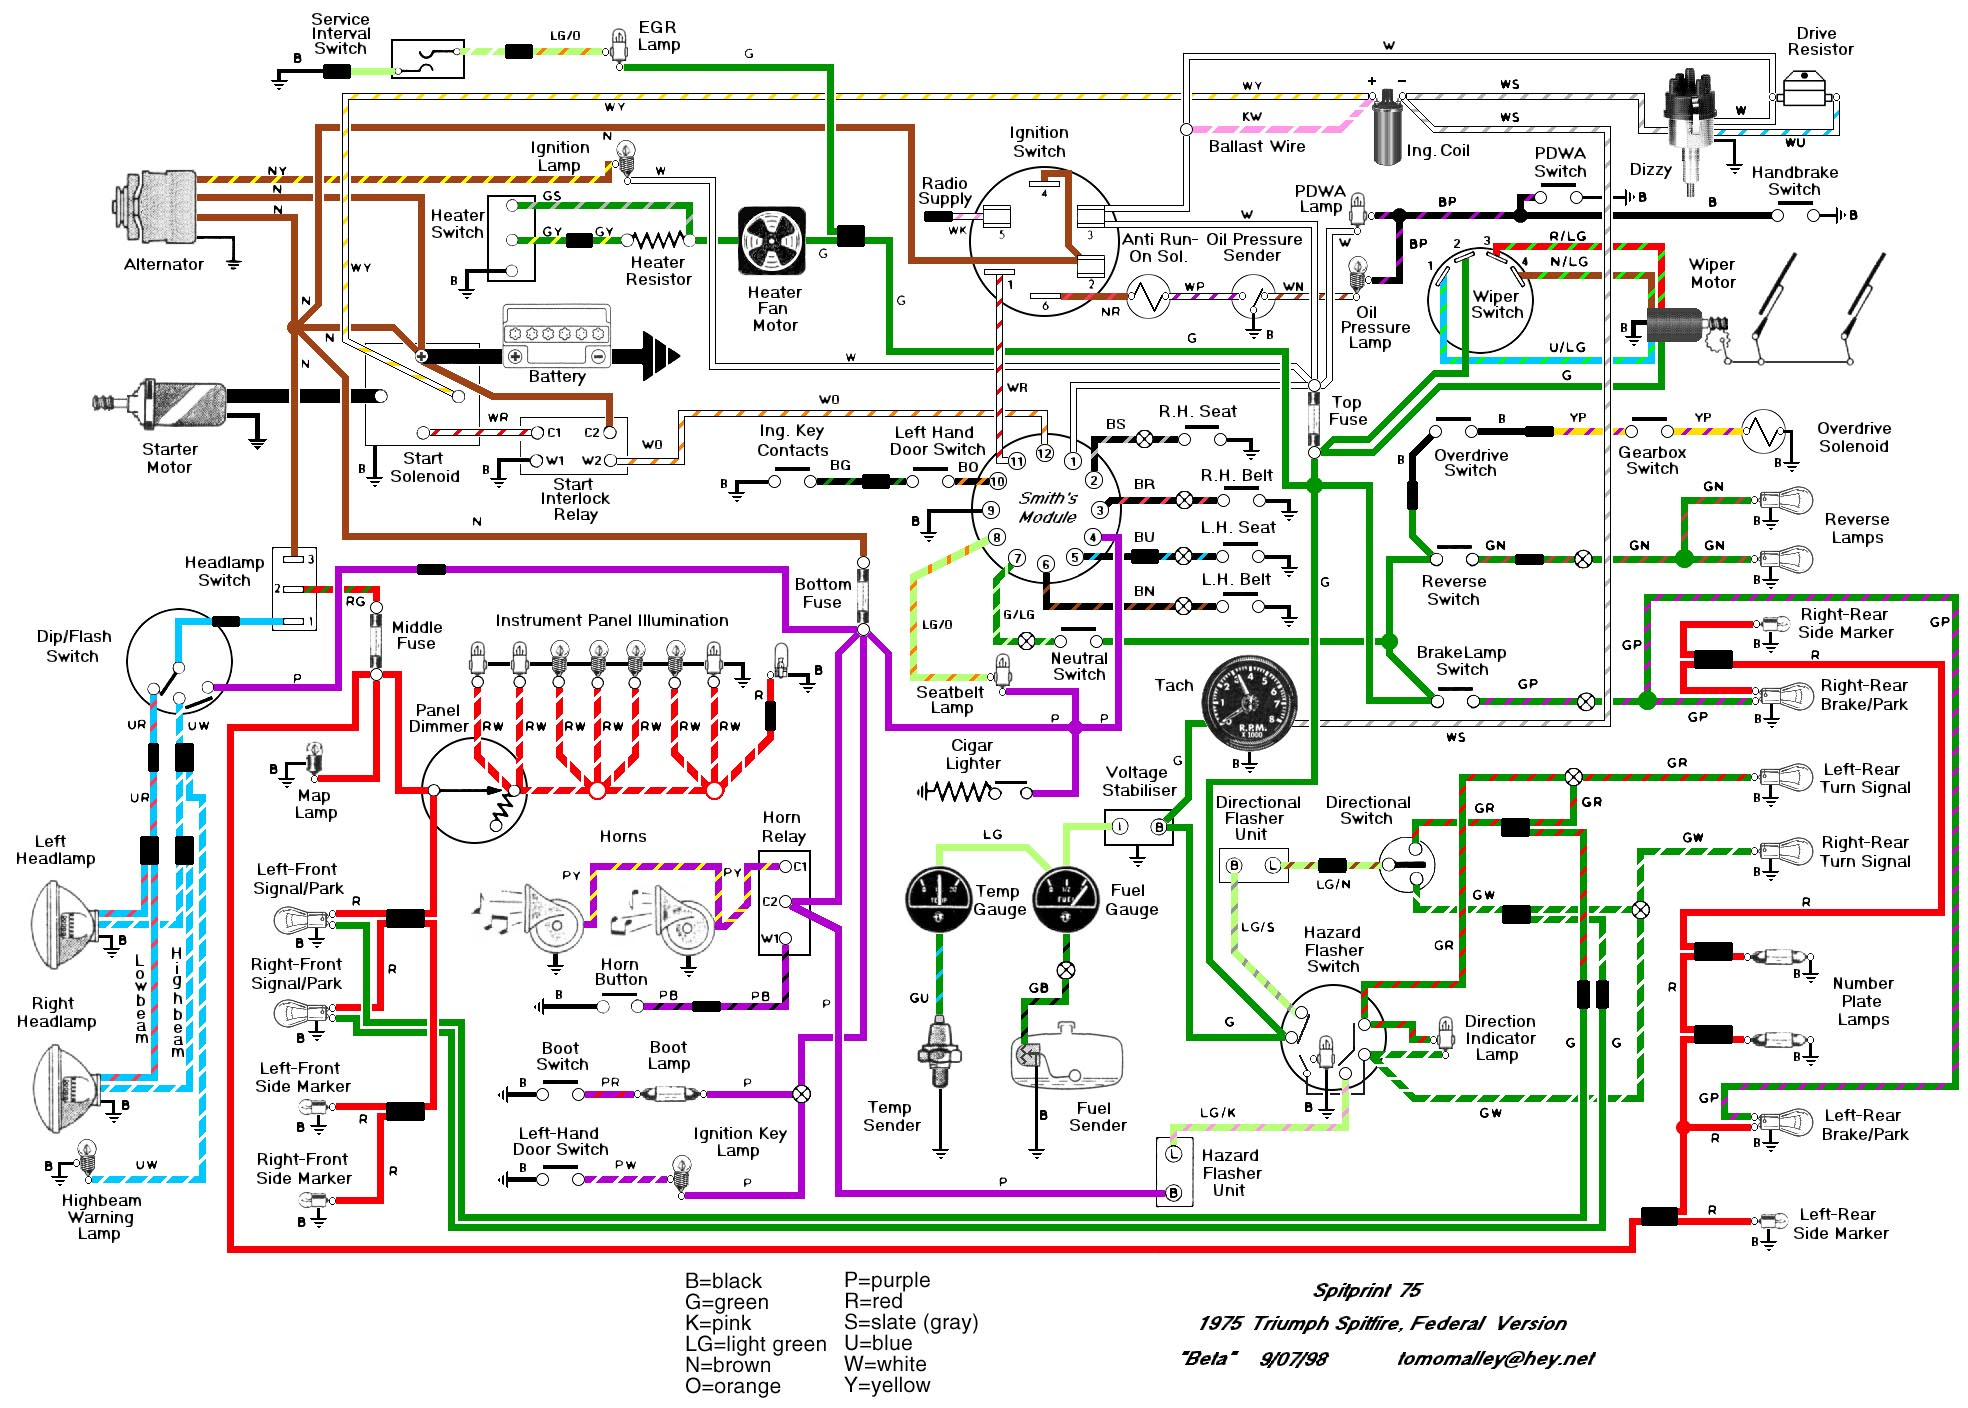 75diagram wiring schematics and diagrams triumph spitfire, gt6, herald 75 jeep cj5 wiring diagram at virtualis.co